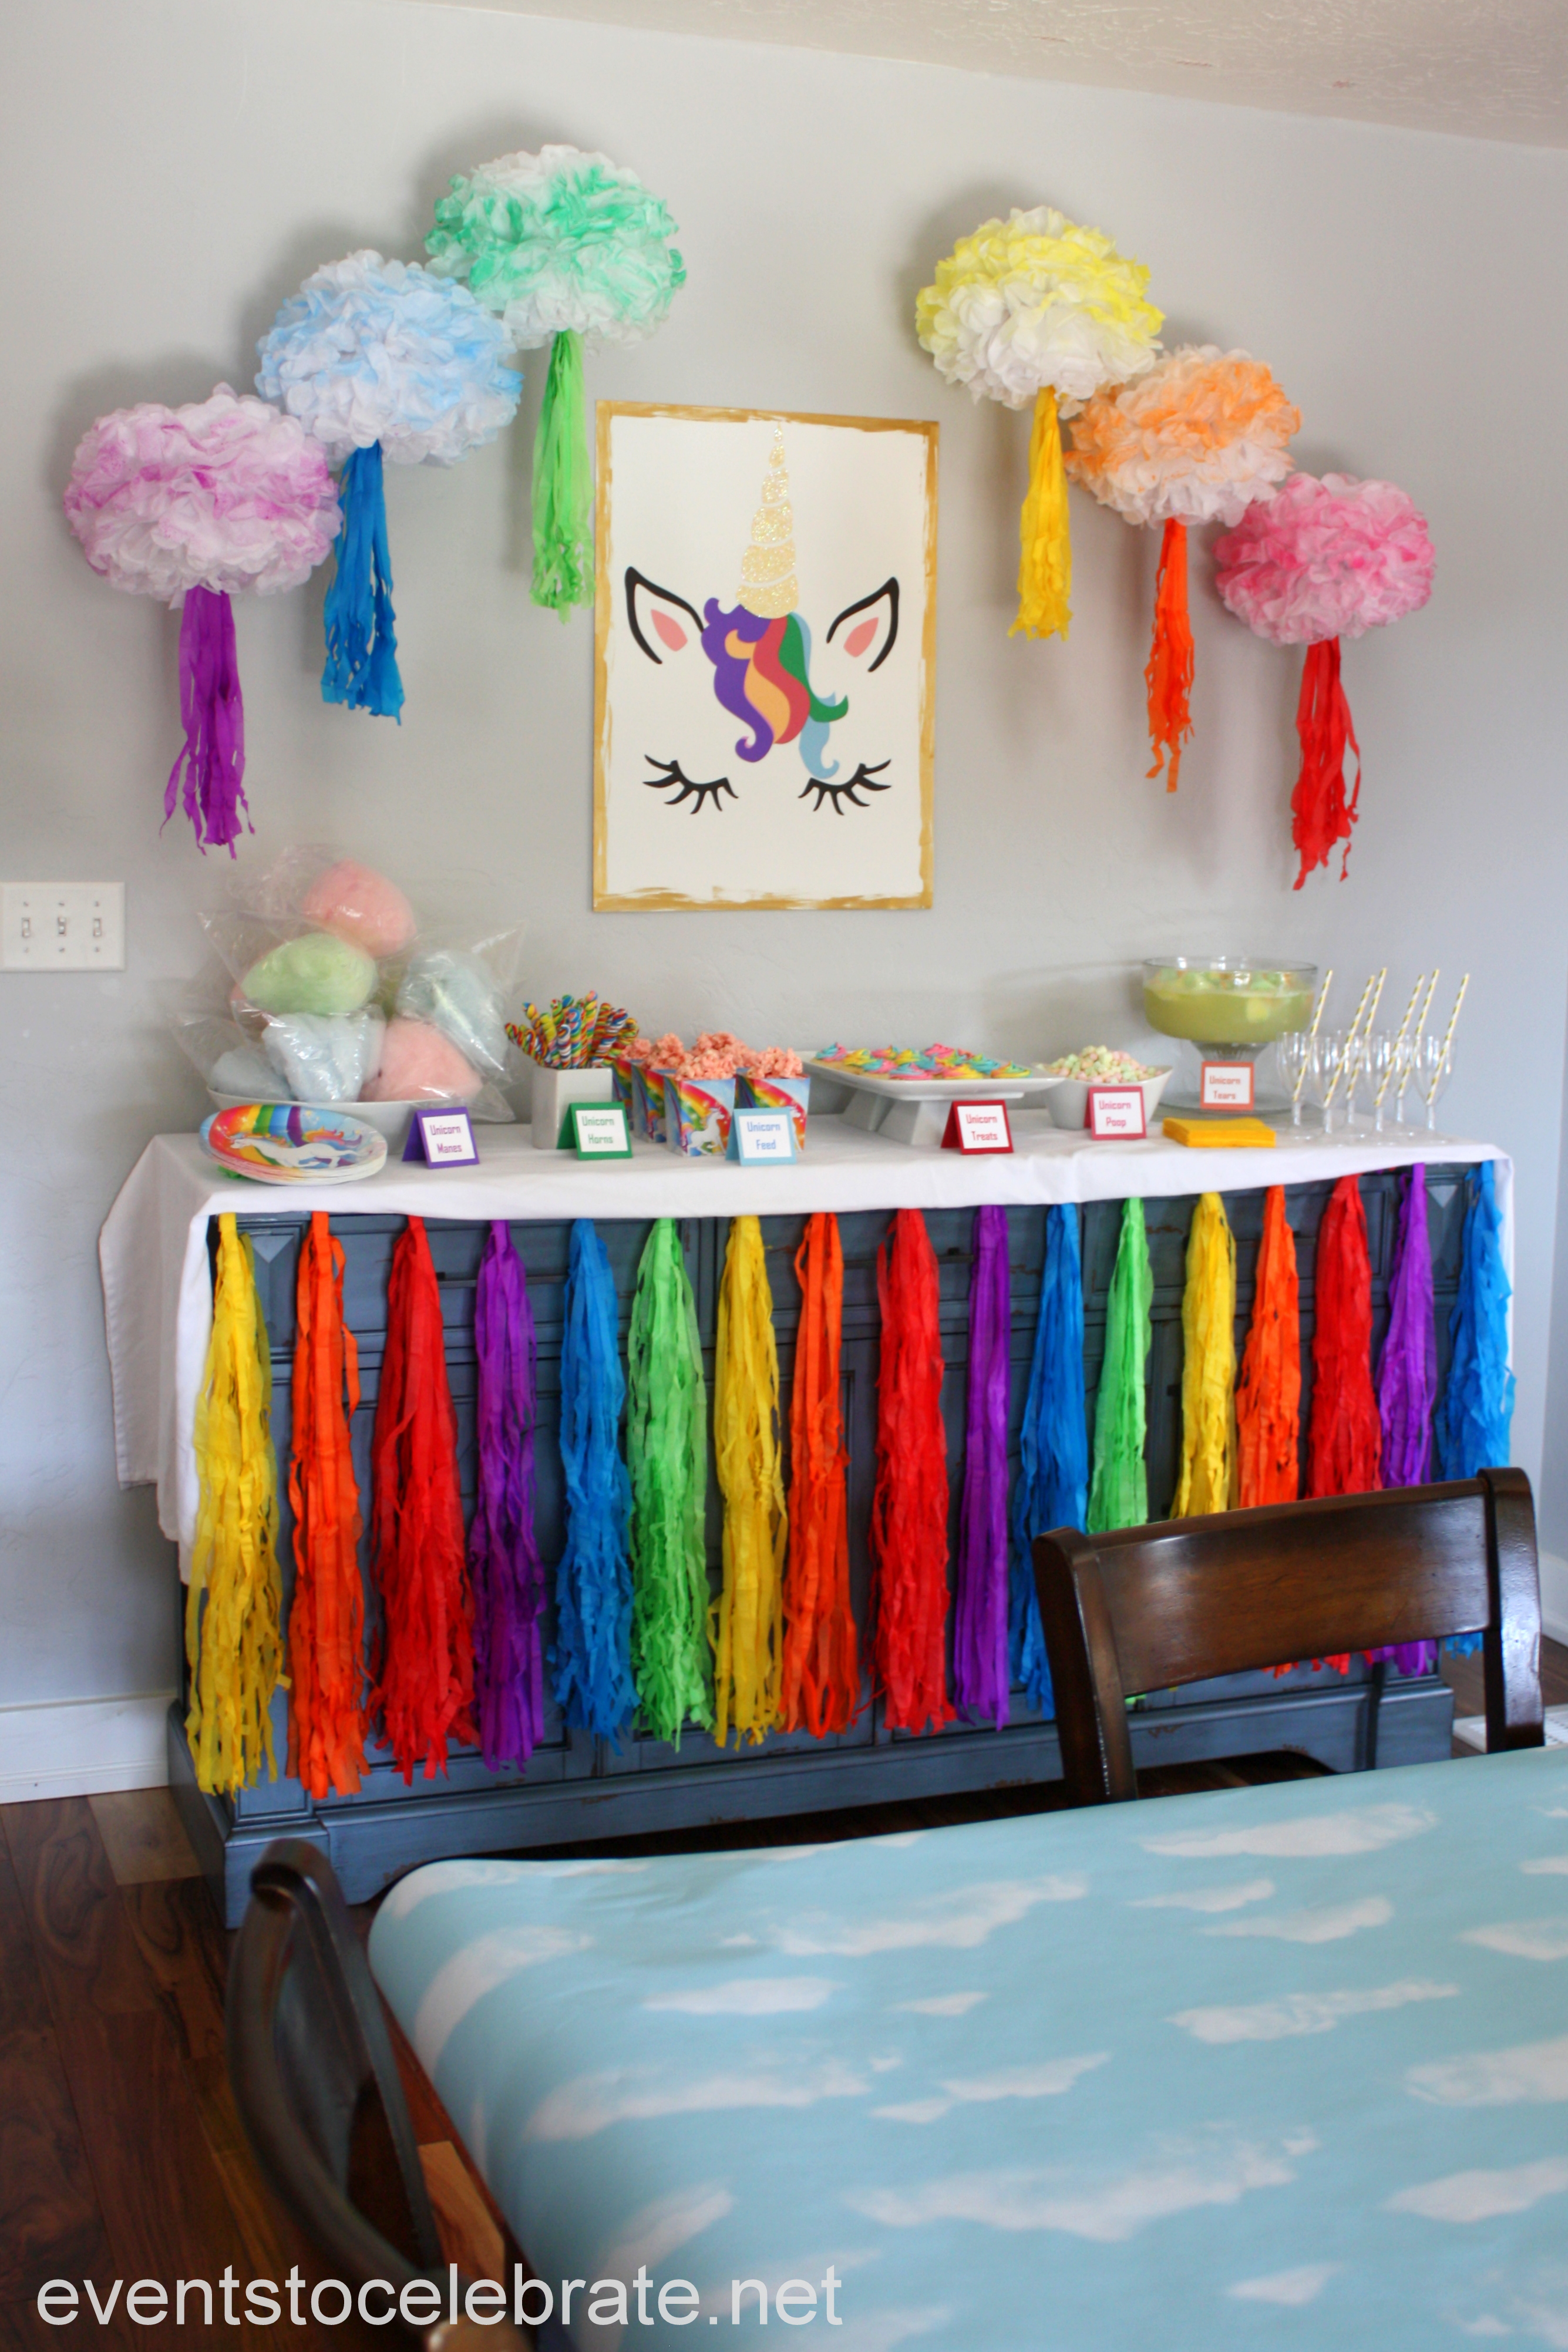 Unicorn Party  Decorations And Food  Events To Celebrate. Building An Island In Your Kitchen. Kitchen Pantry Ideas For Small Kitchens. Kitchen Island Small Apartment. Kitchen Islands With Cabinets. White Kitchen Backsplash Ideas. Paint My Kitchen Cabinets White. Kitchen Storage Solutions For Small Spaces. Lowes Kitchen Islands With Seating